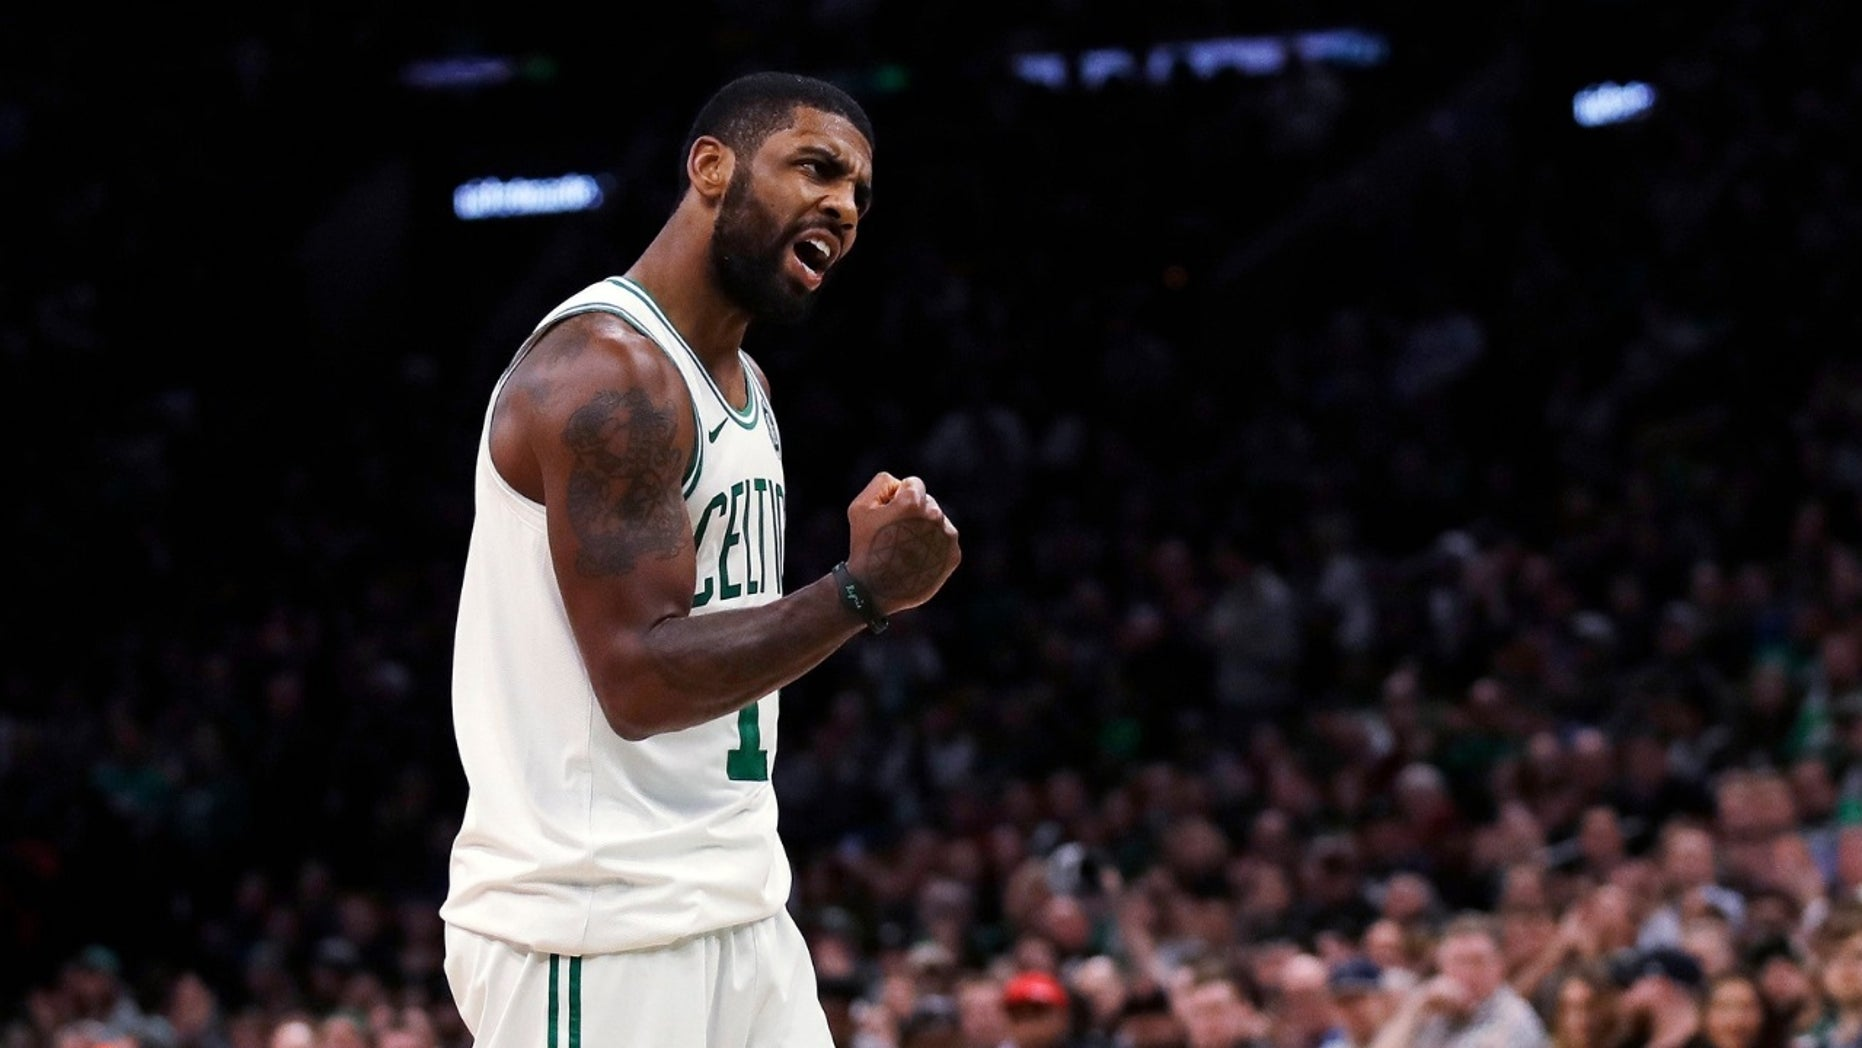 celtics star kyrie irving apologizes for saying f thanksgiving